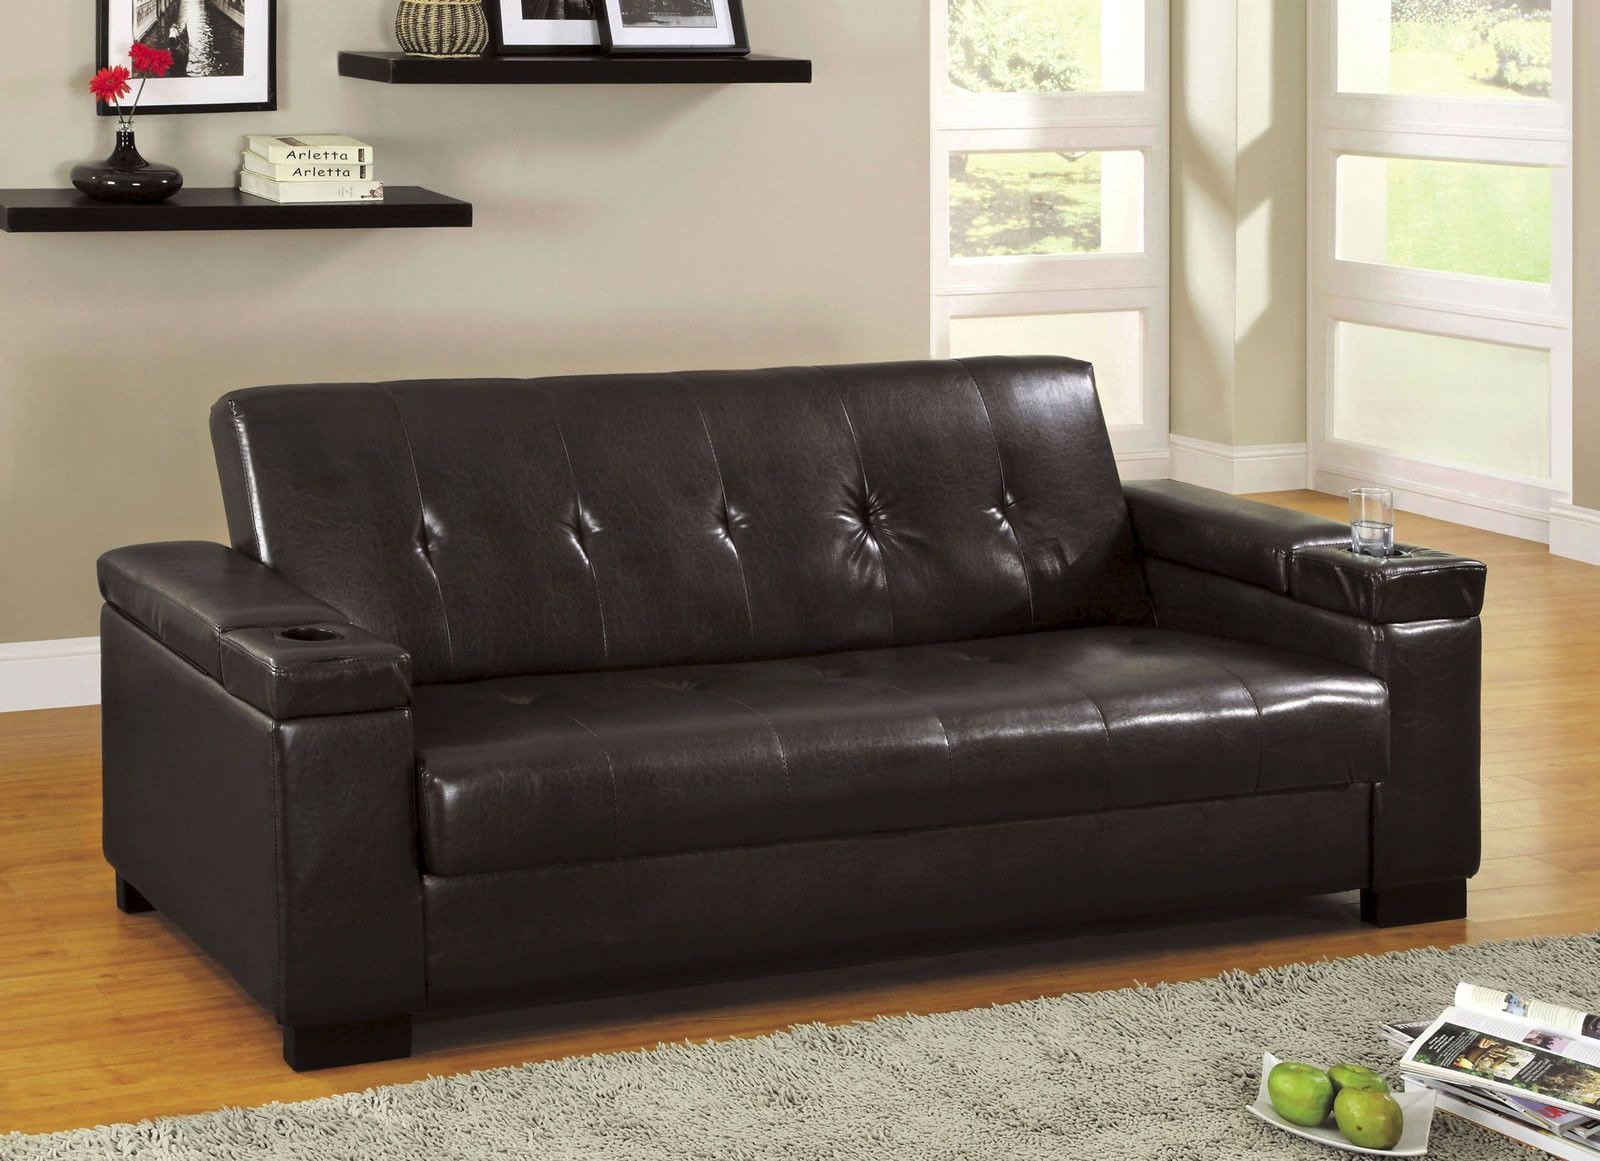 Tomas Leatherette Futon With Storage And Built In Cup